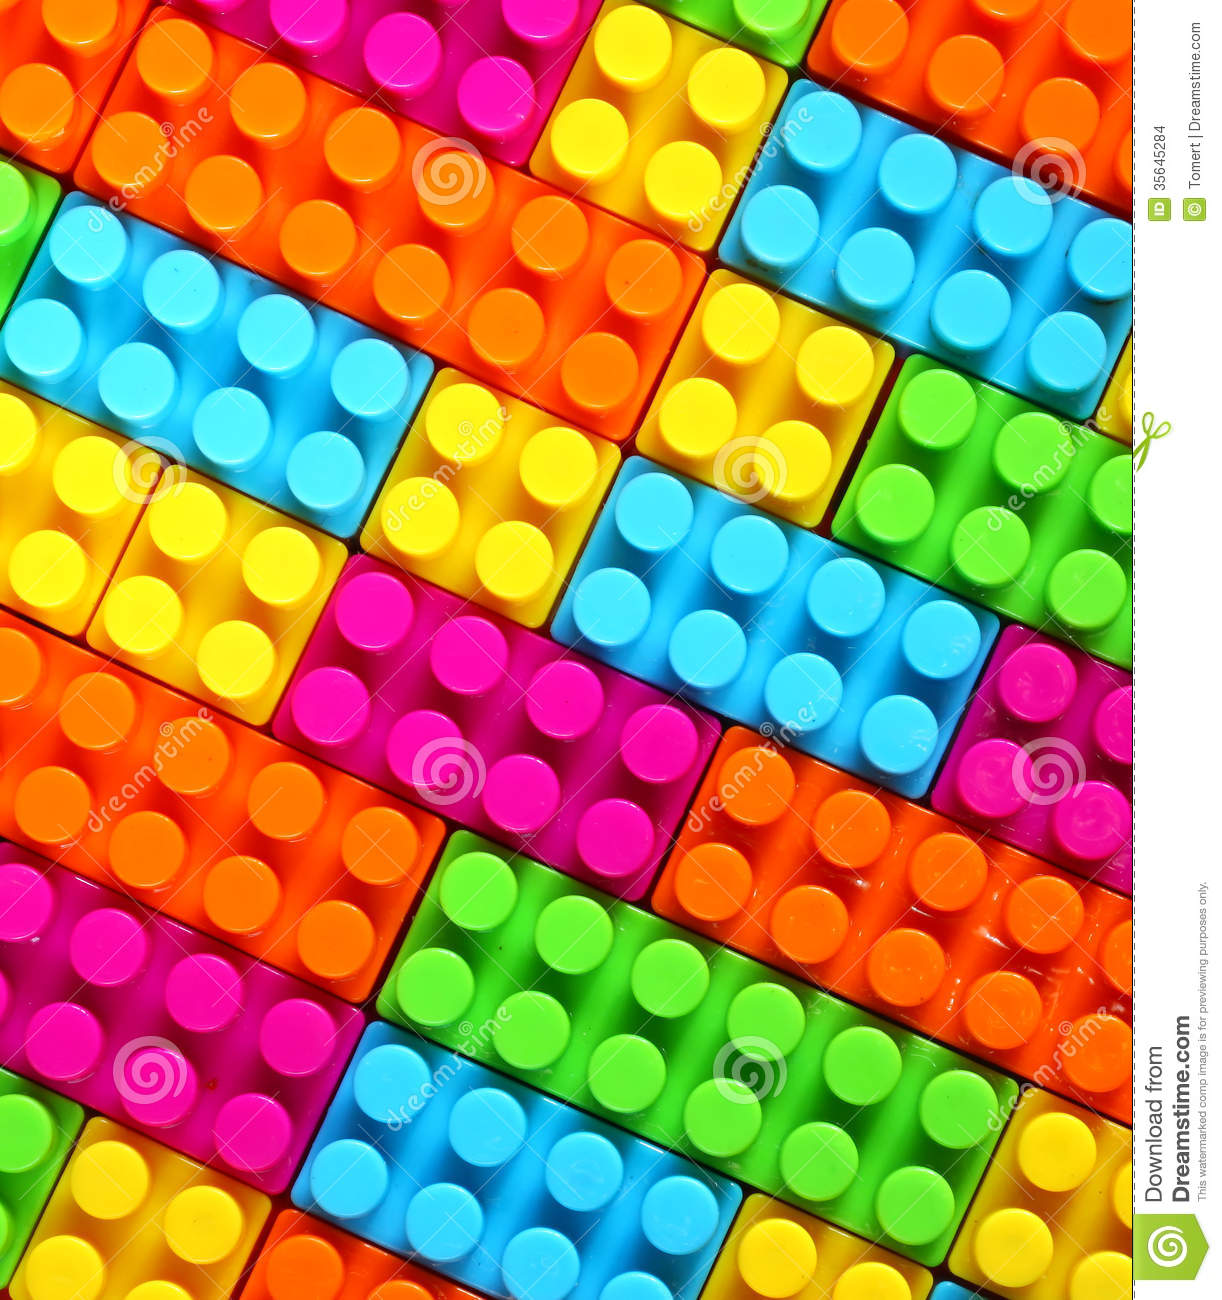 Colorful Children Lego Brick Toy Background Stock Images ...